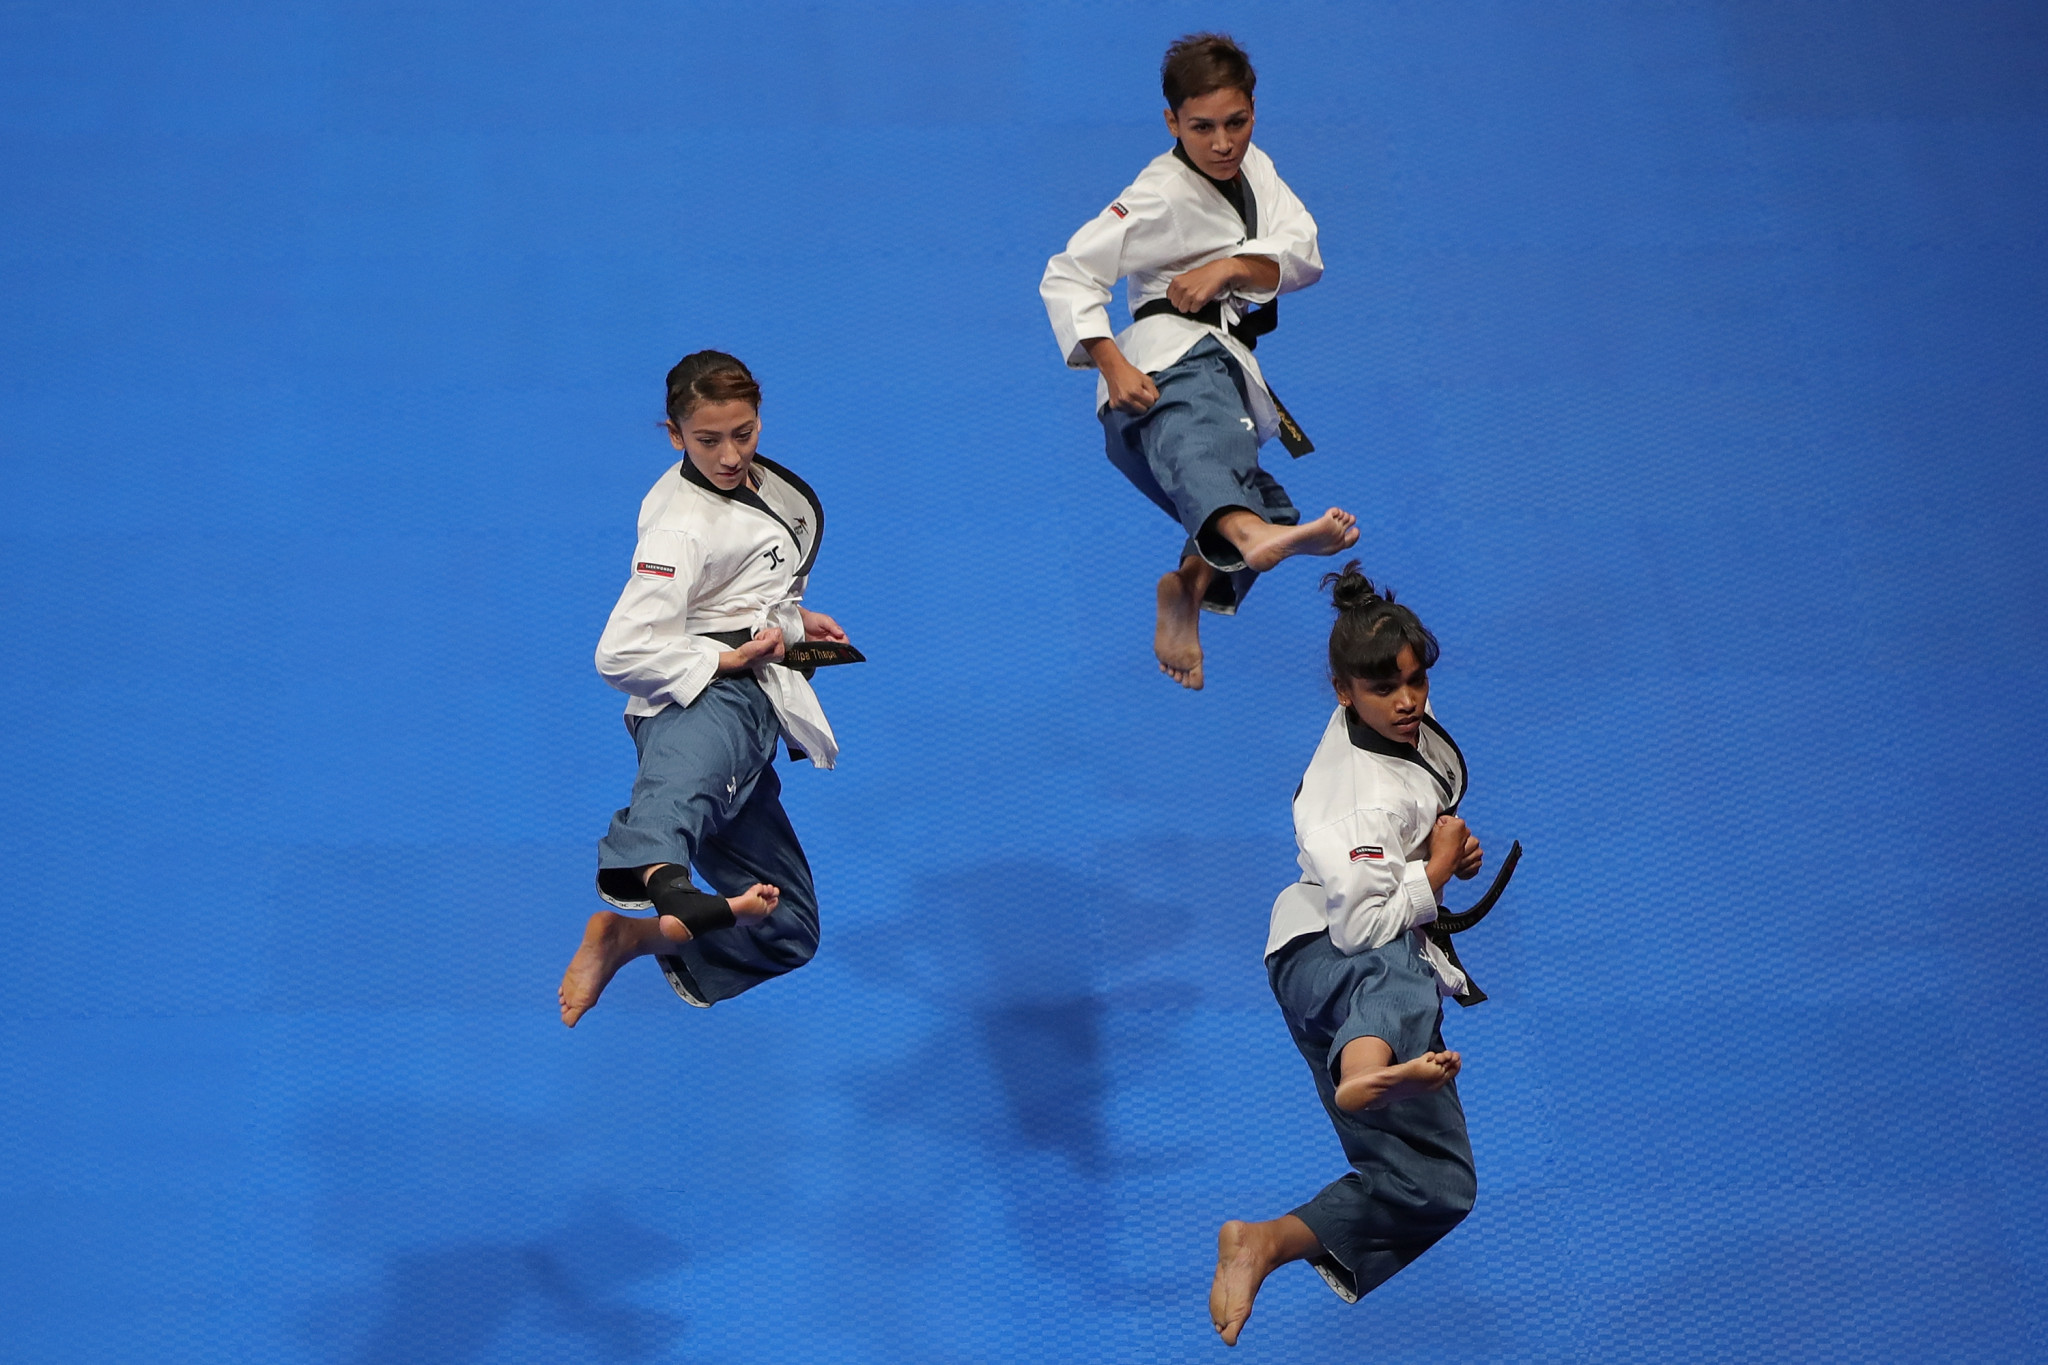 Poomsae taekwondo sees athletes perform a choreographed series of moves - such as kicks, blocks and punches ©Getty Images